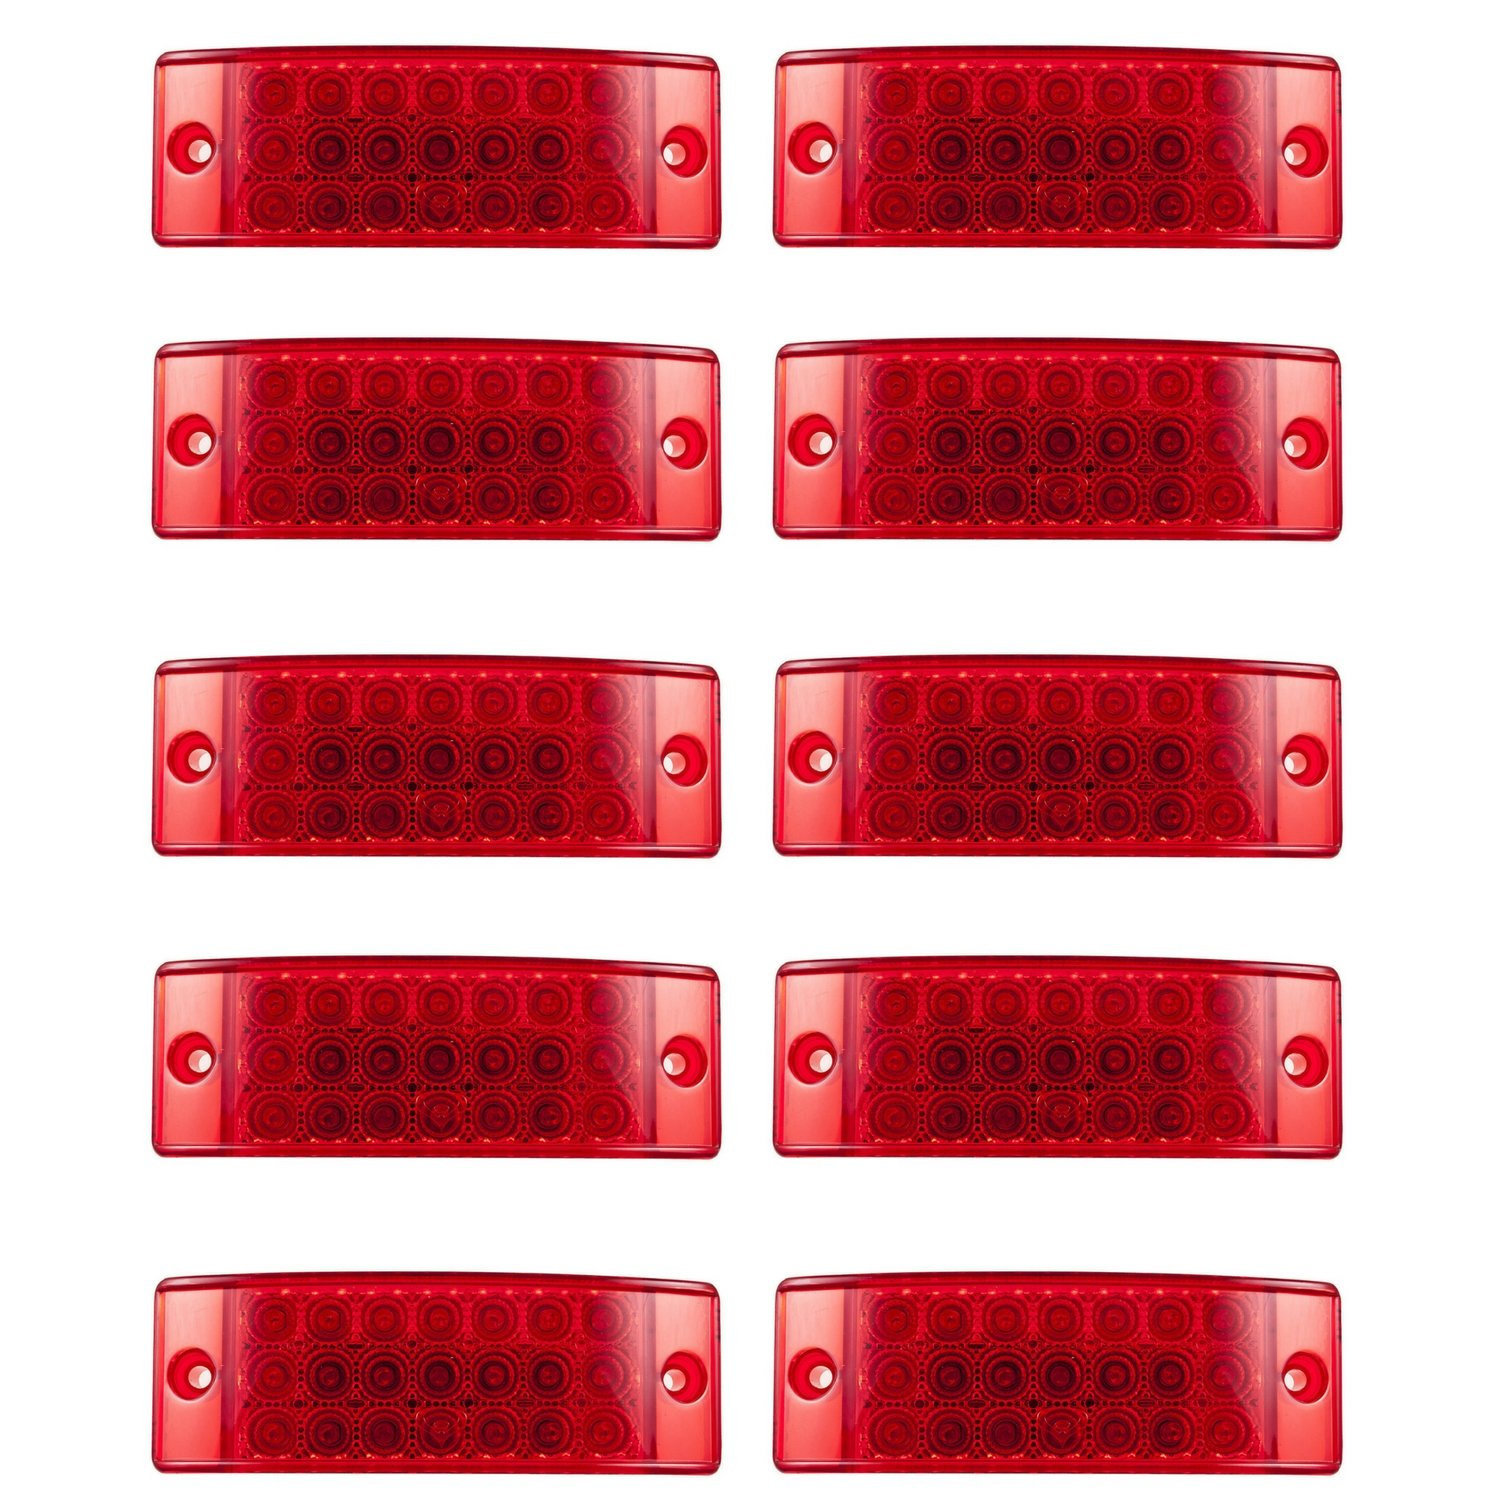 [ALL STAR TRUCK PARTS] Qty 10 - Red 21 LED Side Marker Clearance Stop Turn Tail Brake Lights 2''x6'' Rectangle 12V Truck Trailer Camper